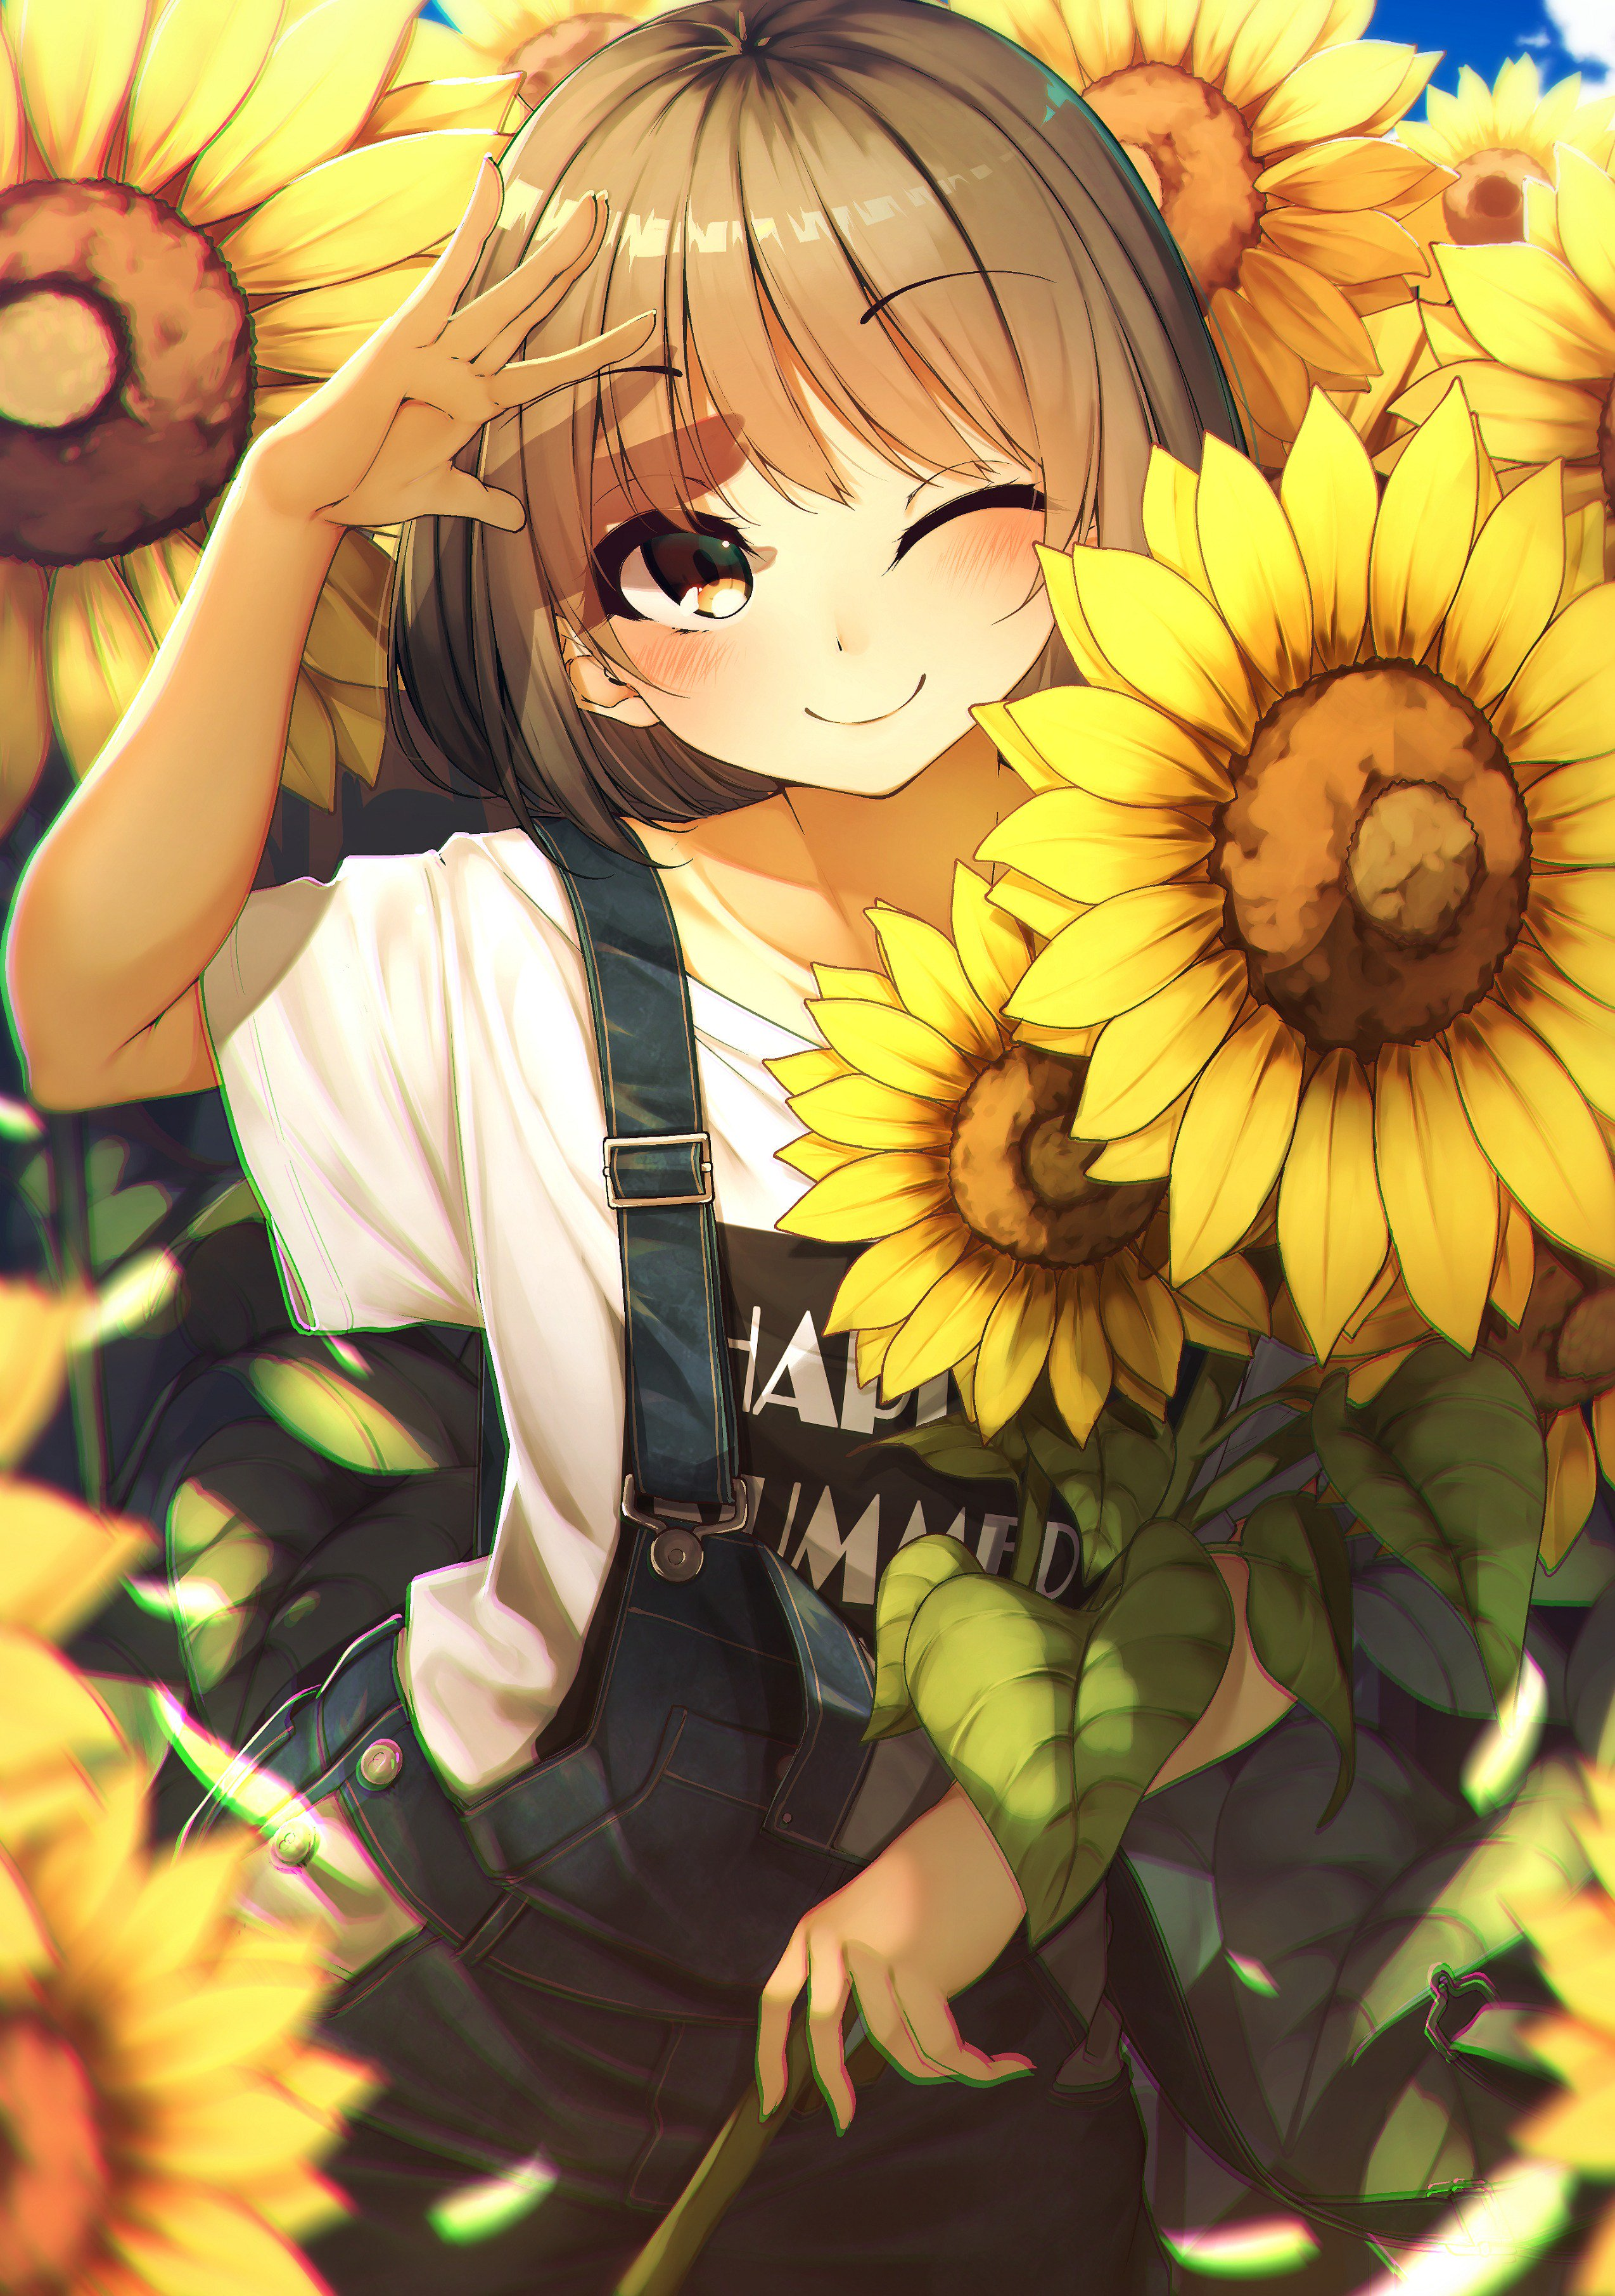 Anime Girl With Short Brown Hair And Brown Eyes - HD Wallpaper